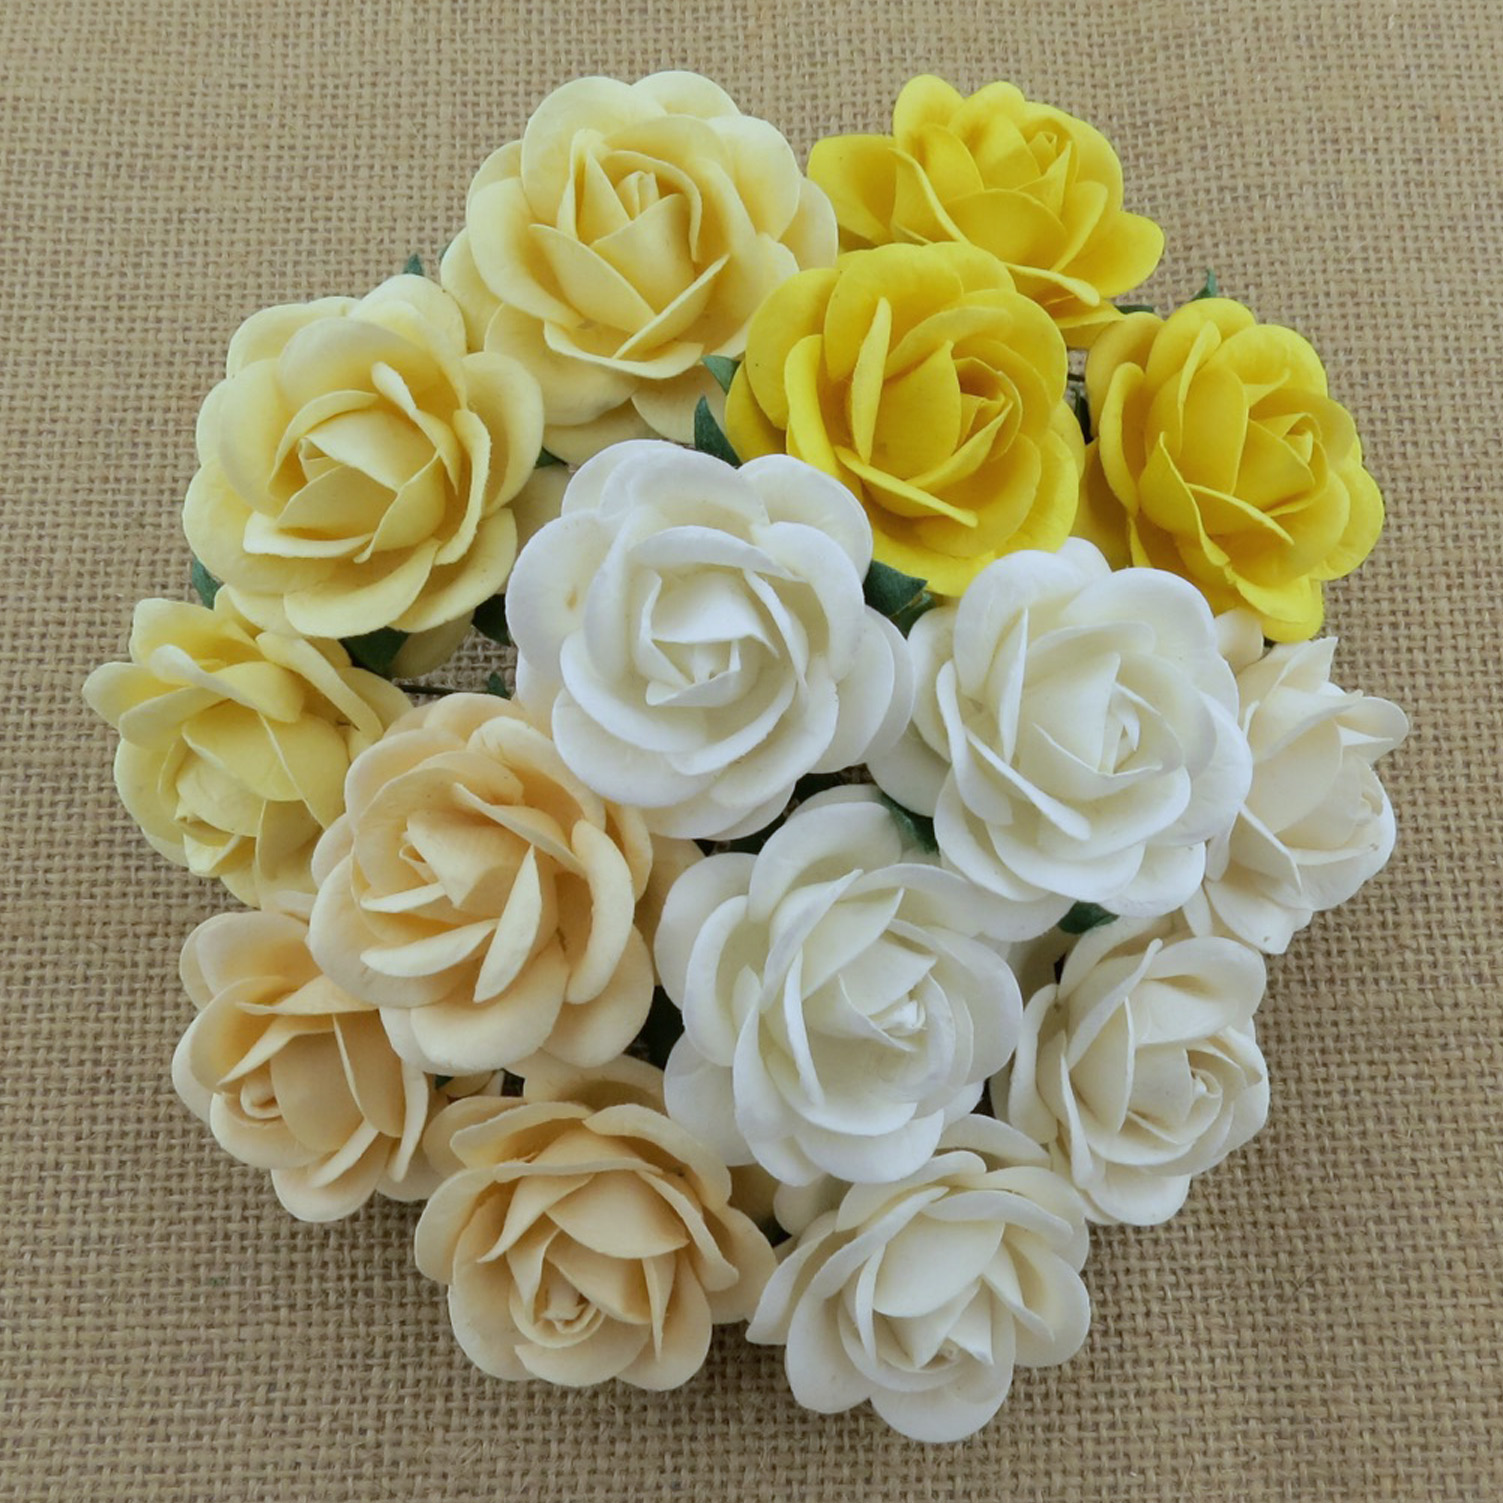 50 MIXED WHITE/CREAM MULBERRY PAPER TRELLIS ROSES - 5 COLOR